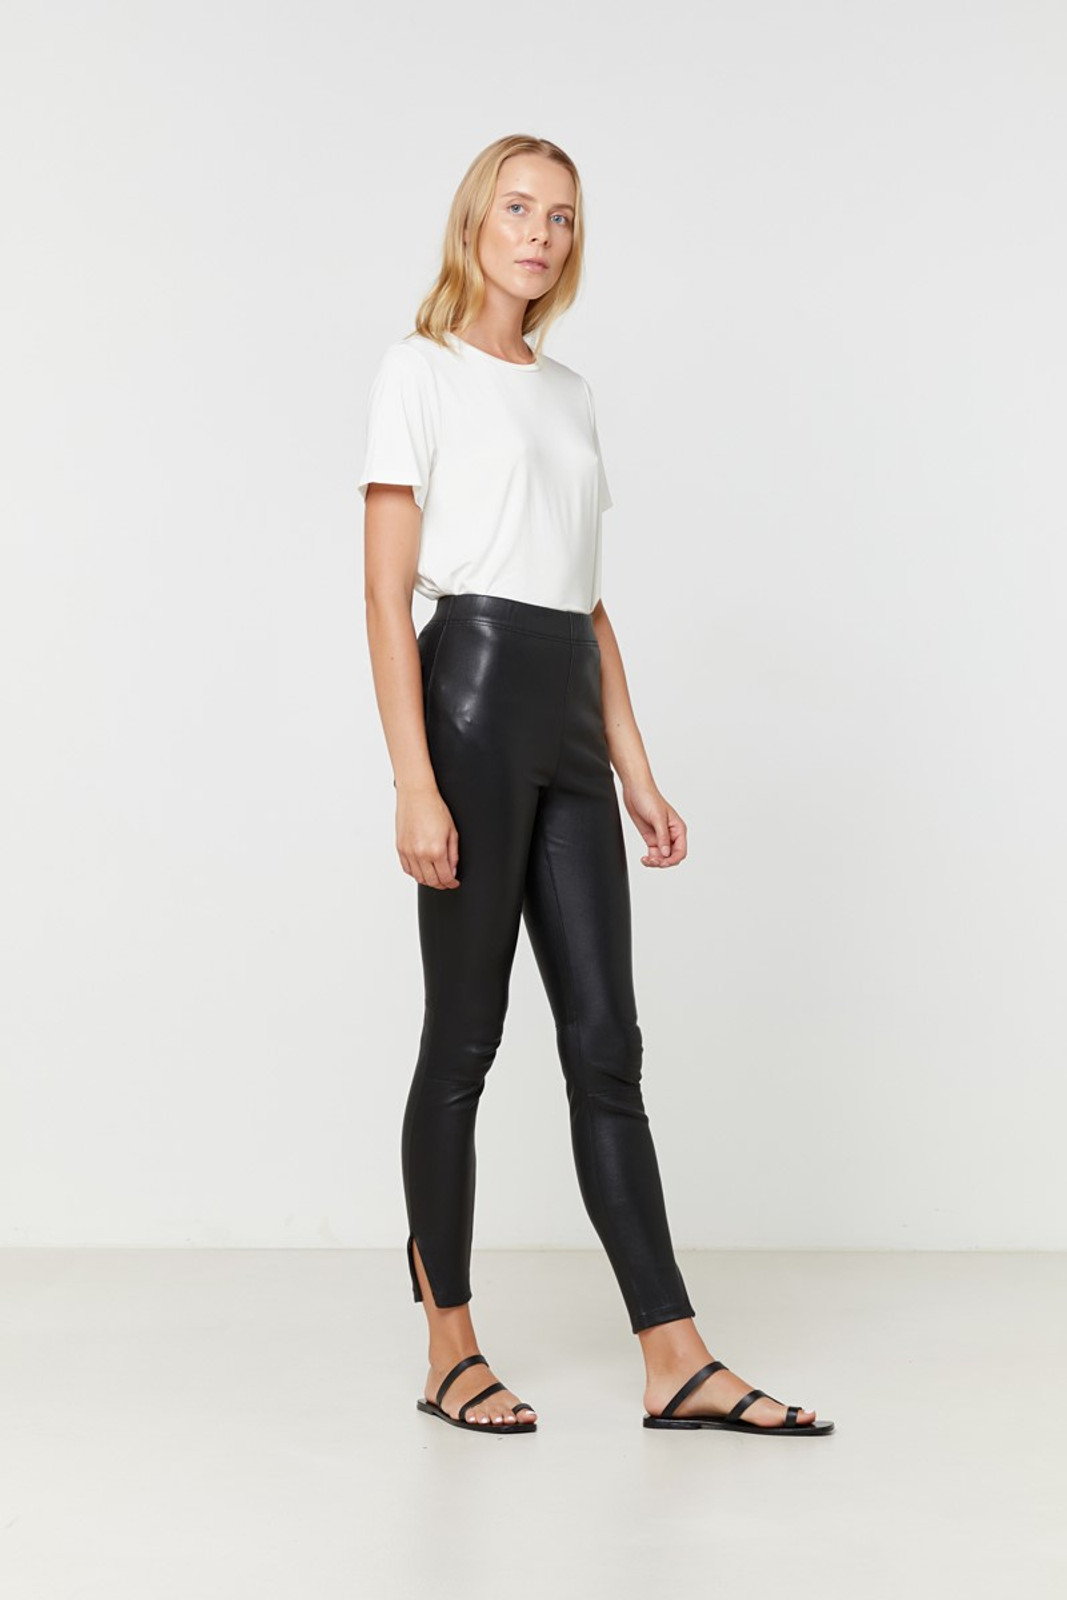 Elka Collective Rosa Leather Pant Black  5